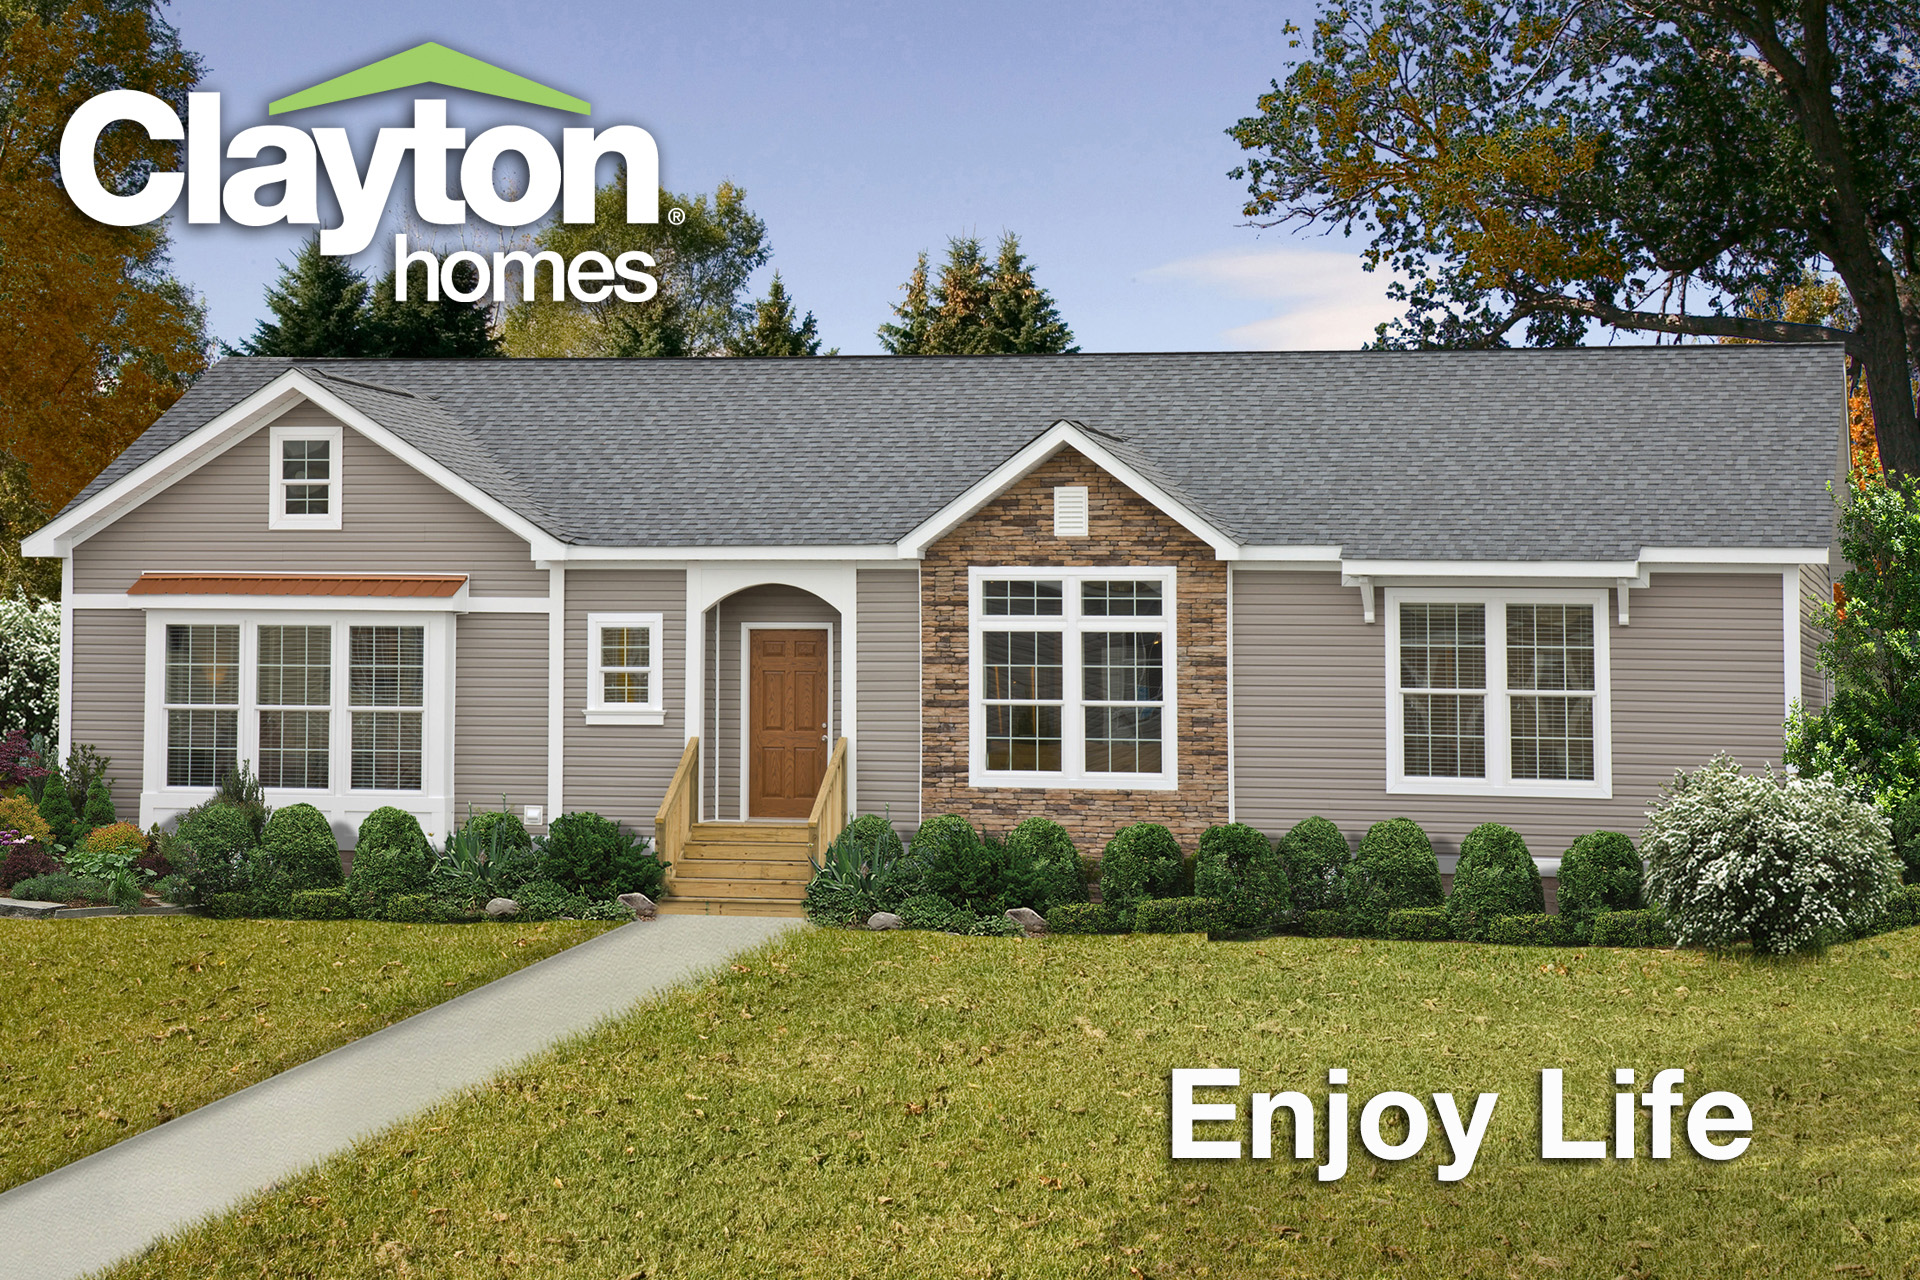 Clayton homes customer service complaints department - Problems with modular homes ...